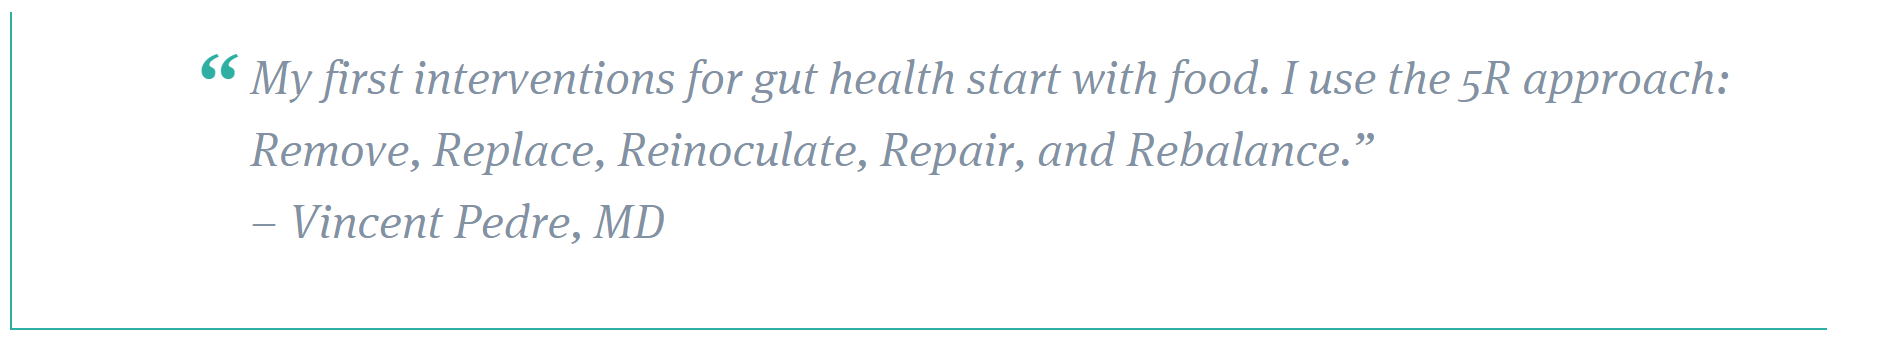 "My first interventions for gut health start with food. I use the 5R approach: Remove, Replace, Reinoculate, Repair, and Rebalance."" – Vincent Pedre, MD"